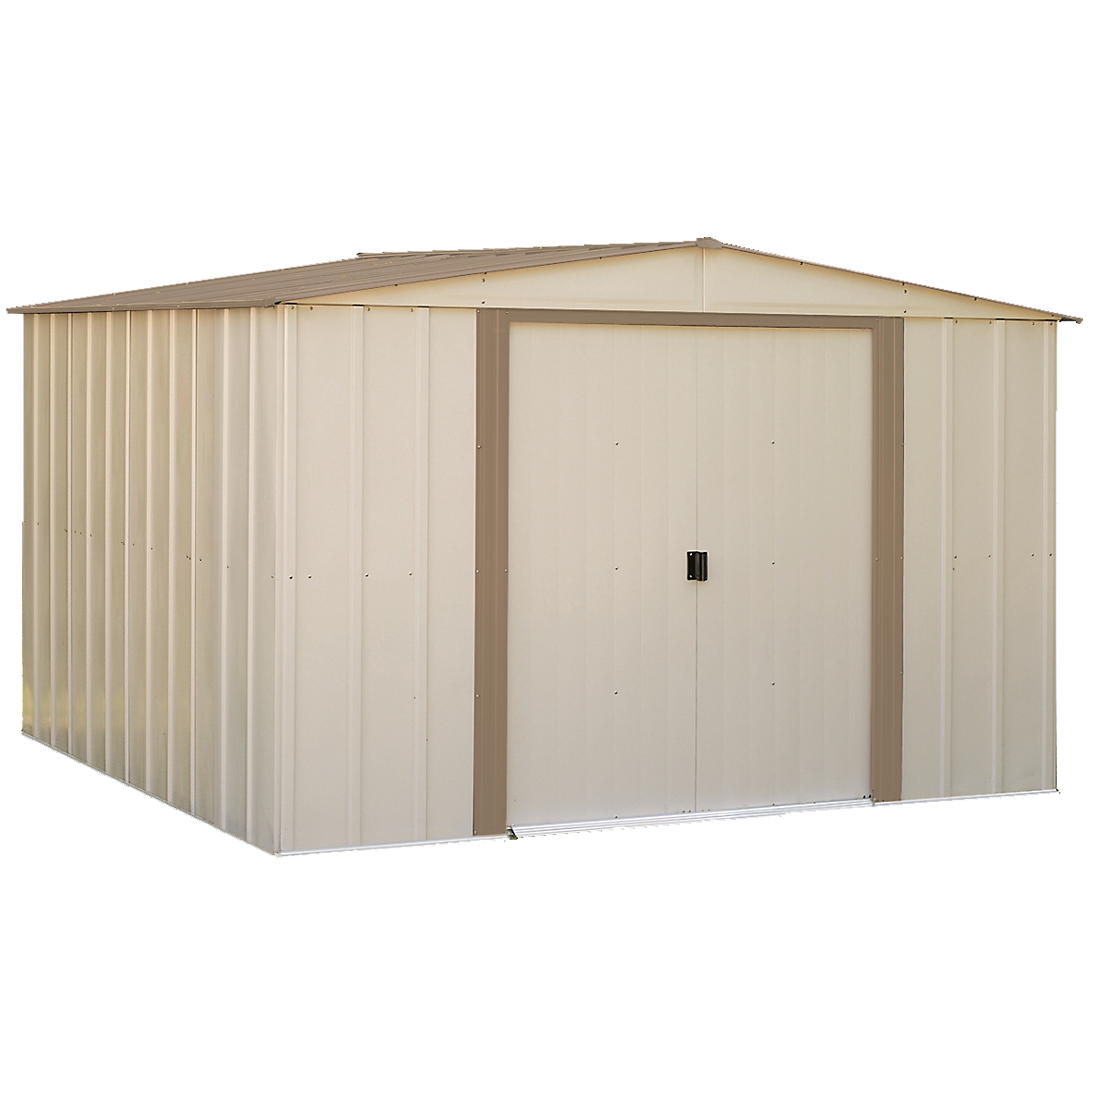 Spacemaker Steel Storage Shed 10 x 10 ft.